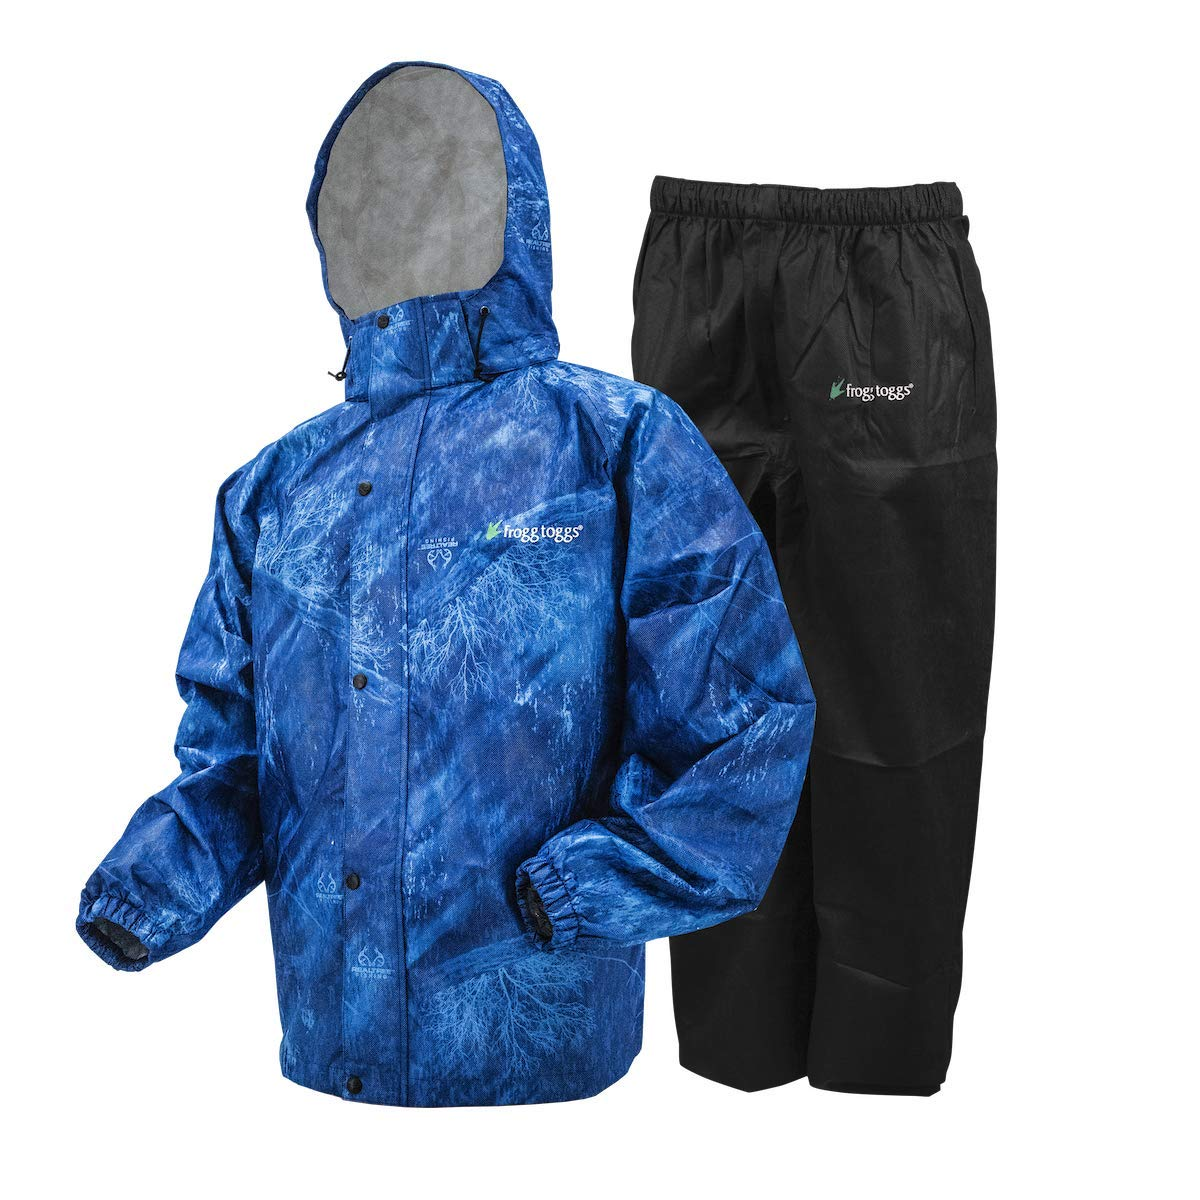 Frogg Toggs All Sport Rain Suit, Realtree Fishing Black, Size XX-Large by Frogg Toggs